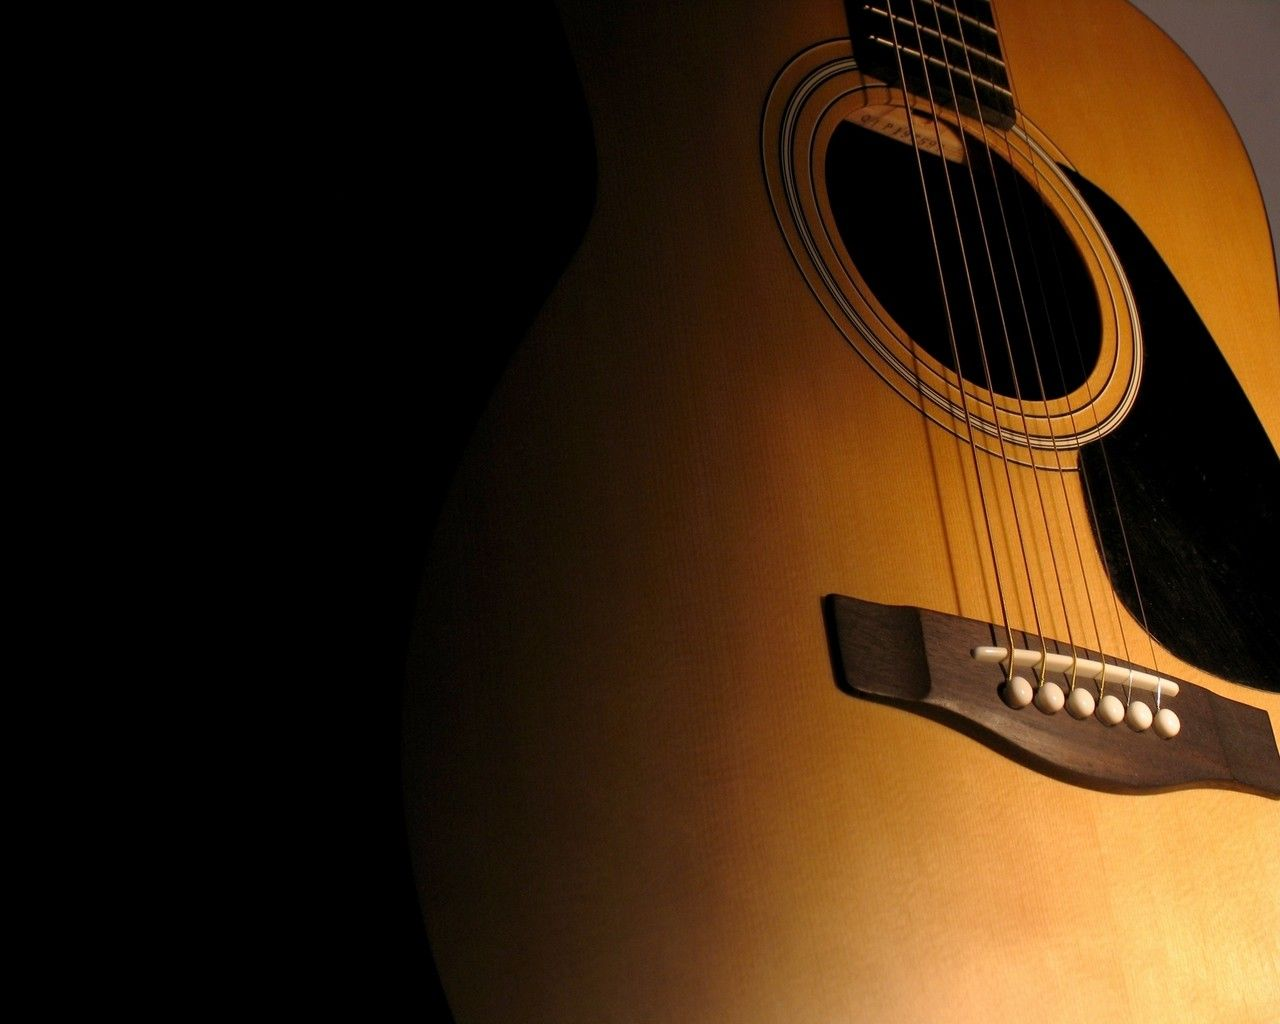 Instrumental acoustic guitar songs to learn